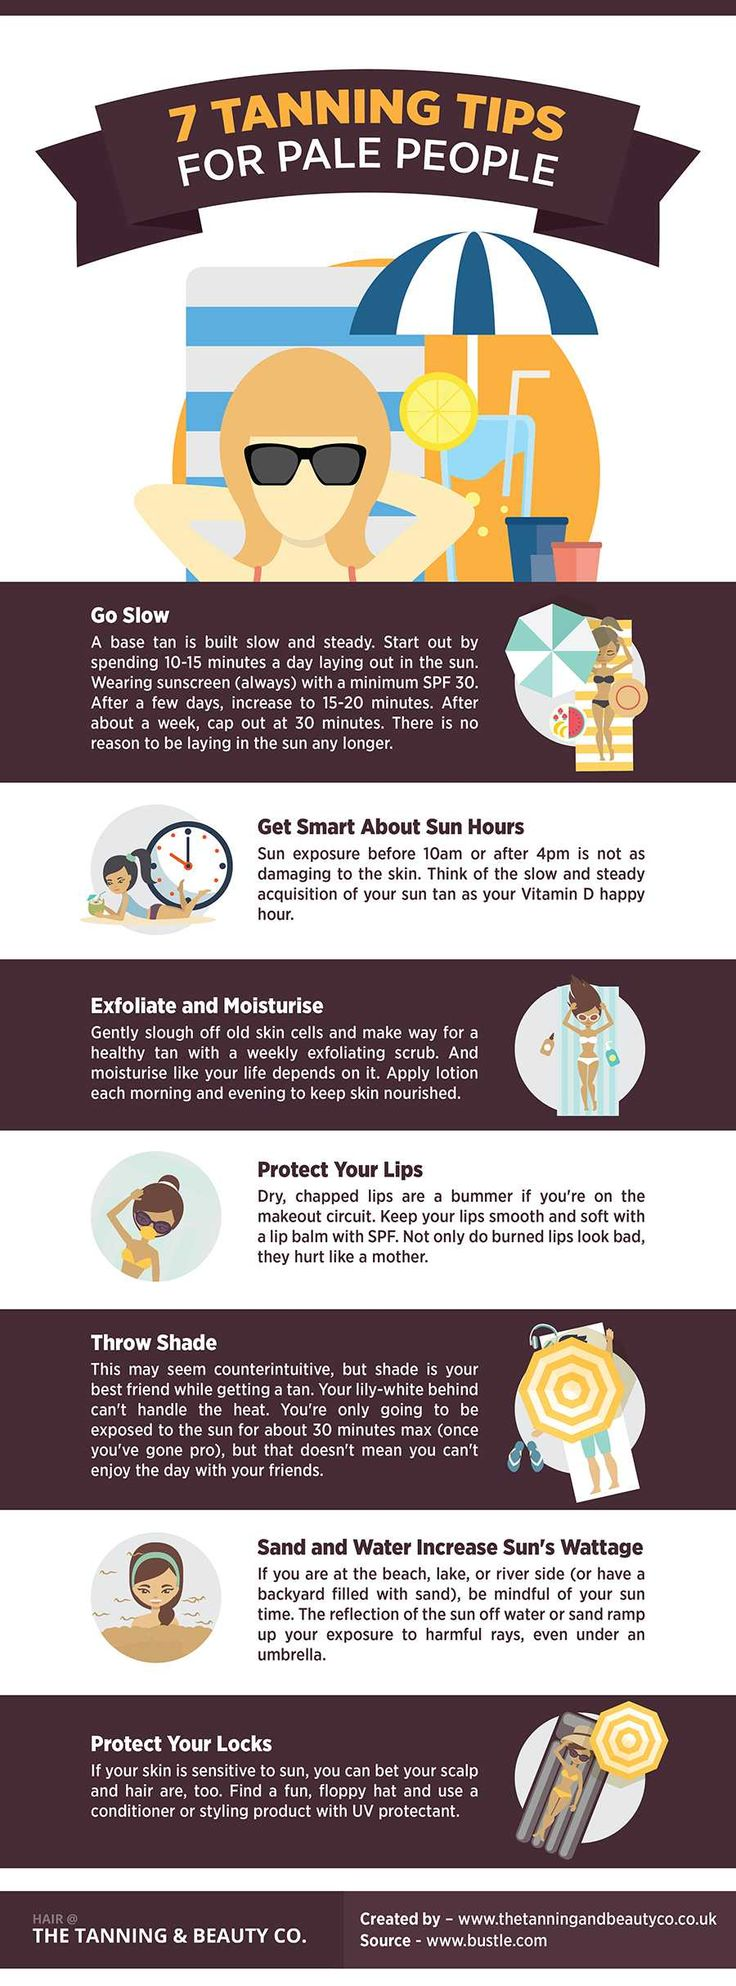 http://www.thetanningandbeautyco.co.uk/tanning-tips-infographic/4593653608  In this infographic we look at some tanning tips for pale people.